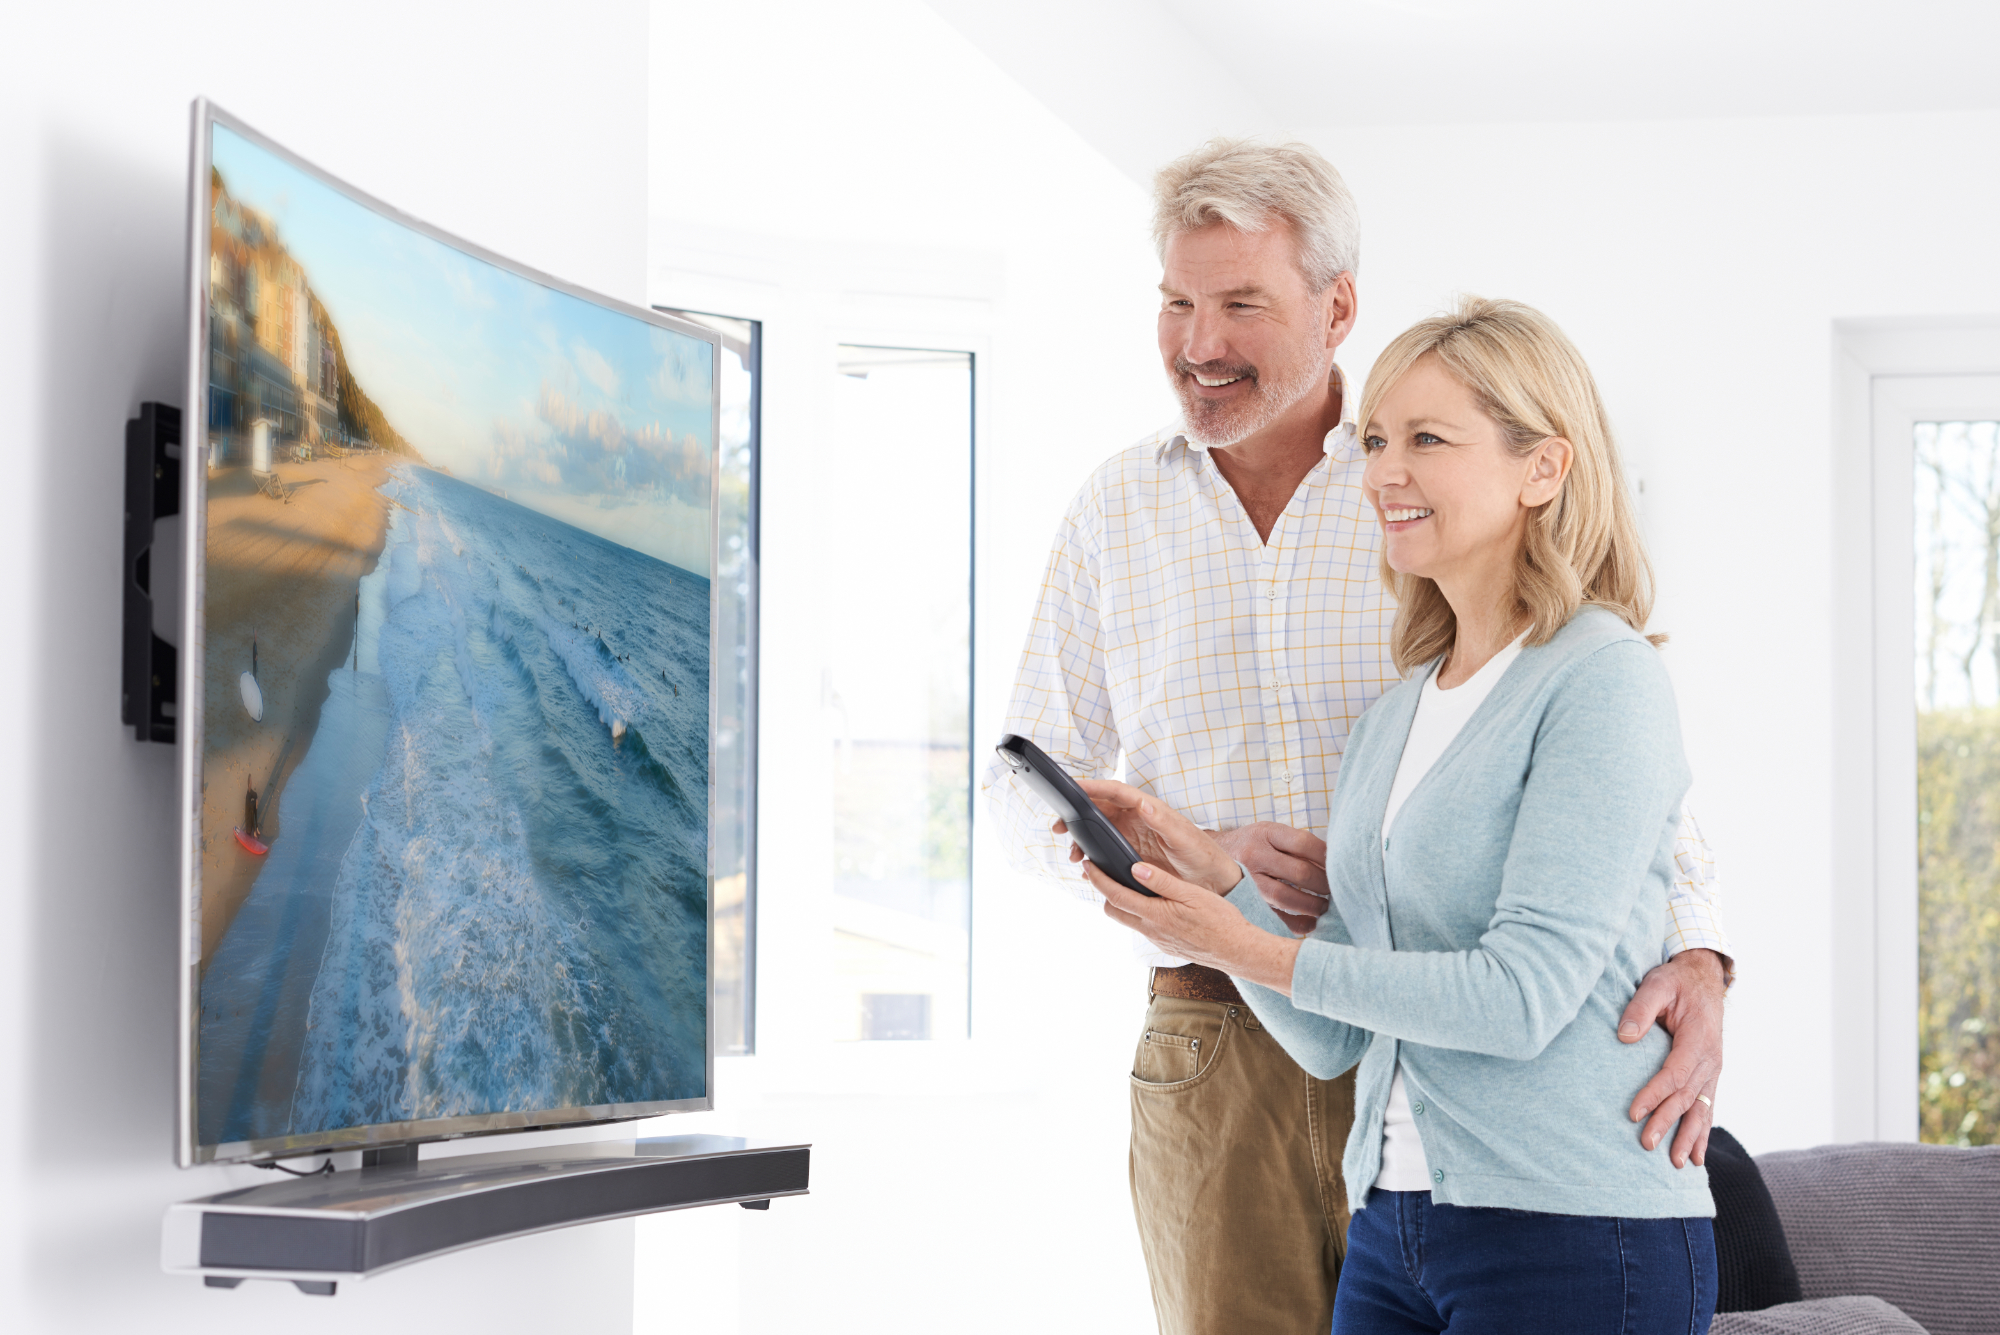 Couple for new television